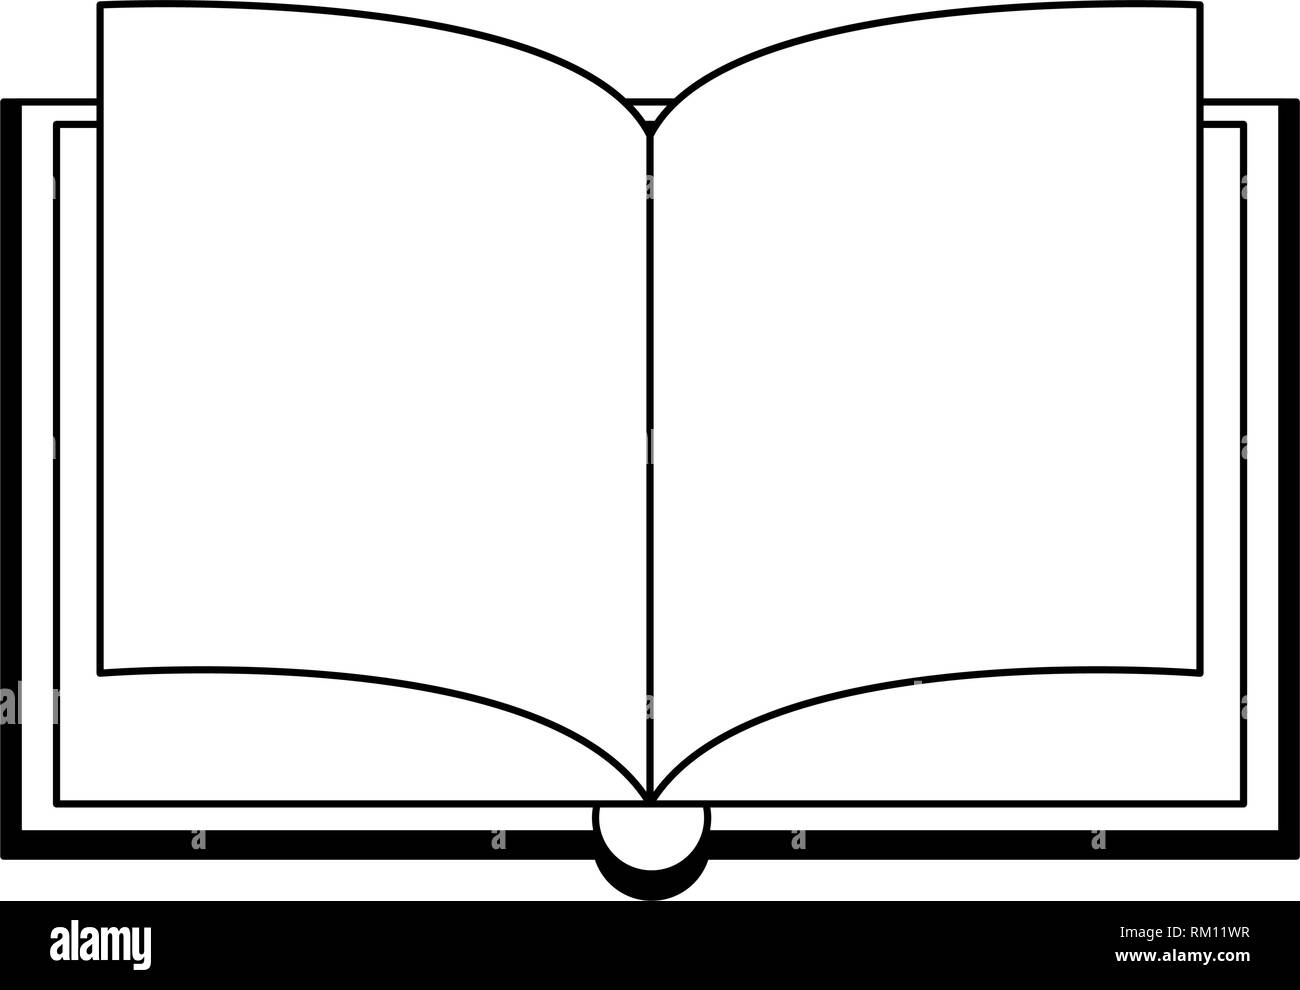 Cartoon Open Book Black And White Stock Photos Images Alamy